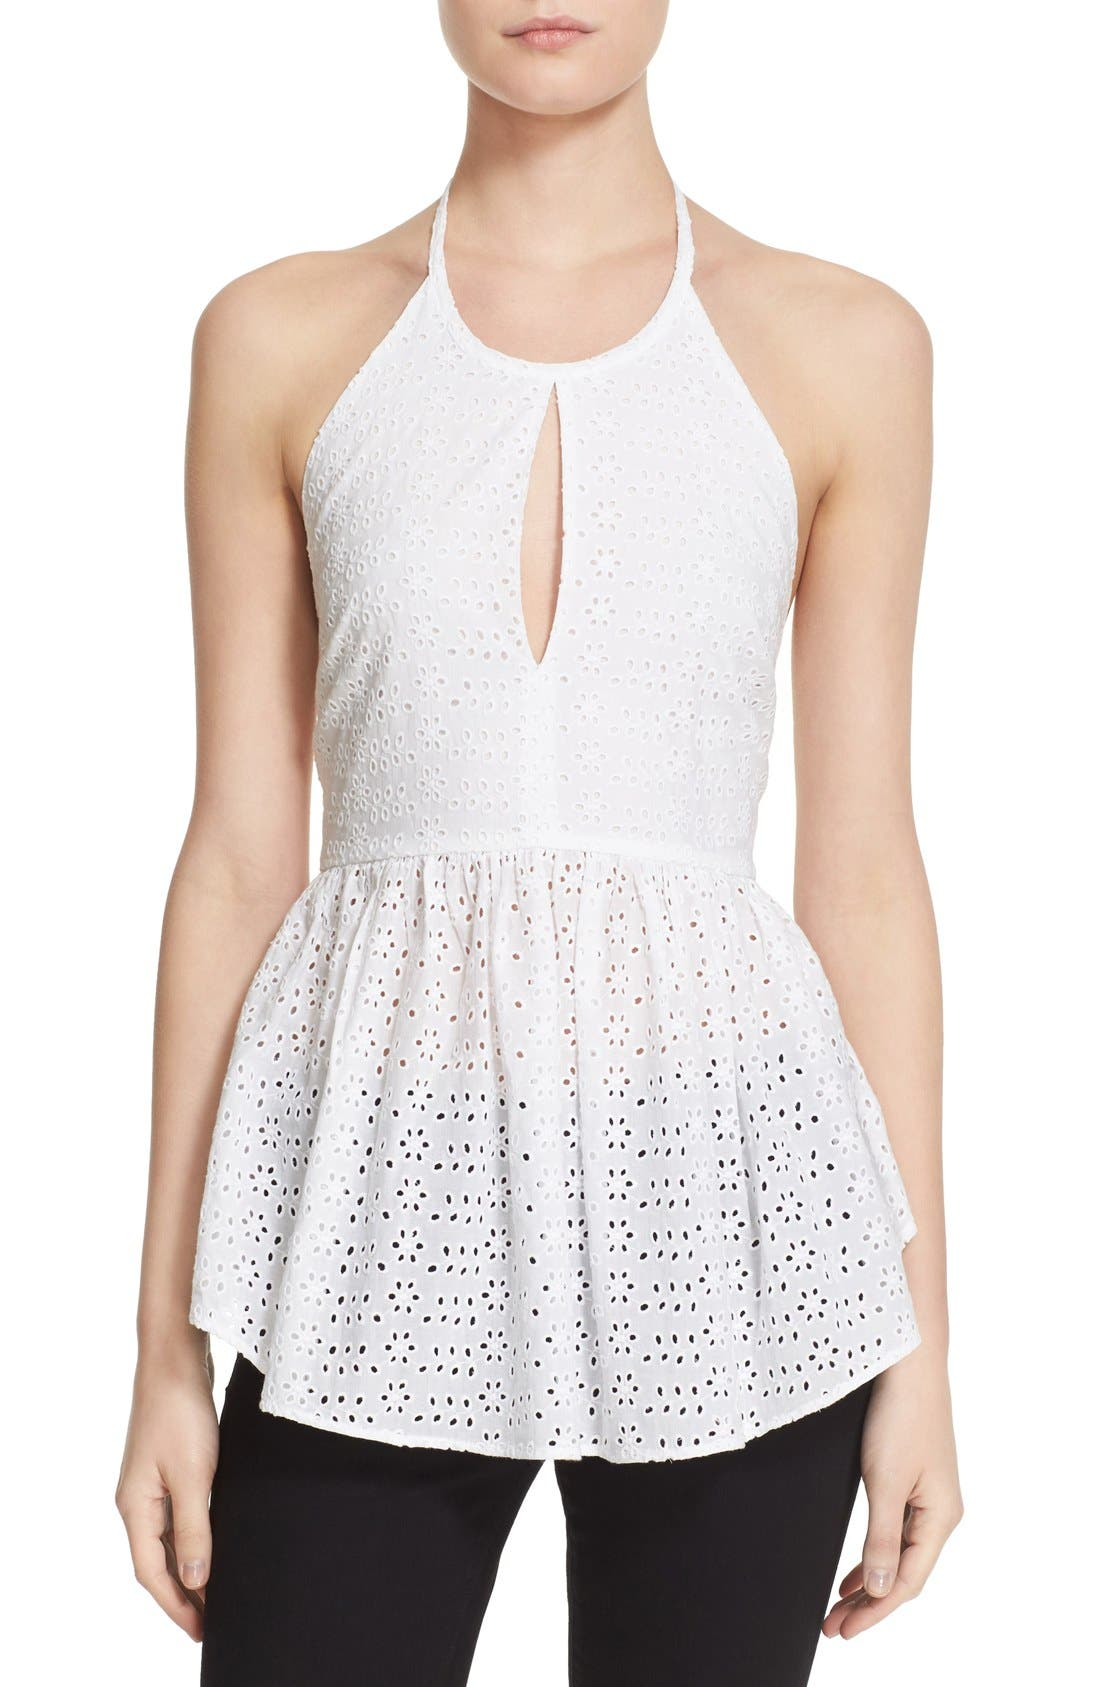 ELIZABETH AND JAMES, 'Perth' Eyelet Peplum Halter Top, Main thumbnail 1, color, 100